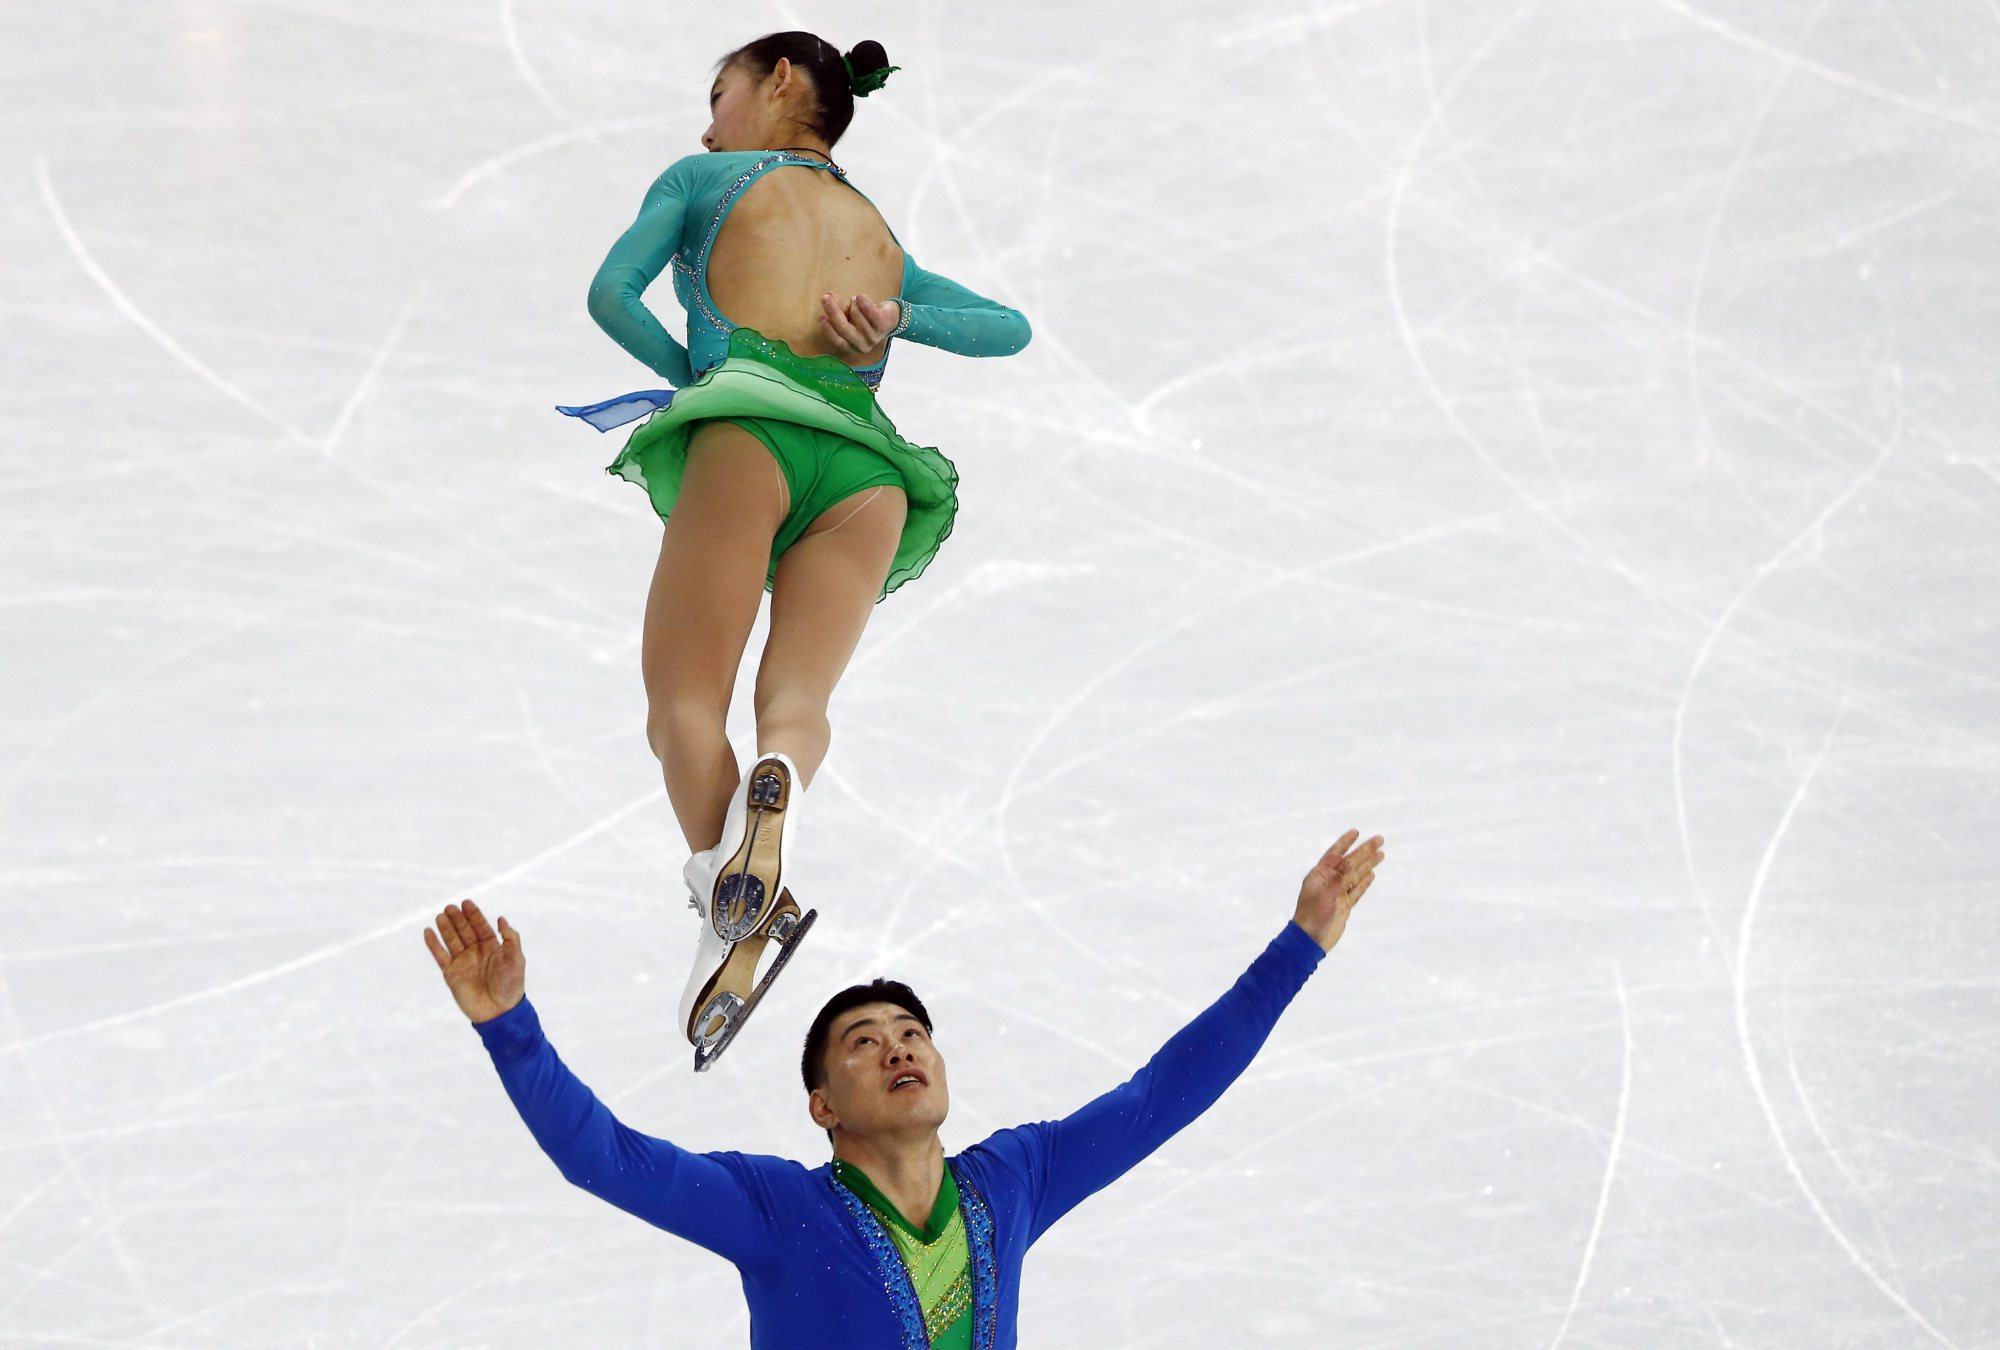 Peng Cheng and Zhang Hao of China perform in the Pairs Short Program of the Figure Skating Team event at Iceberg Skating Palace during the Sochi 2014 Olympic Games, February 6, 2014.